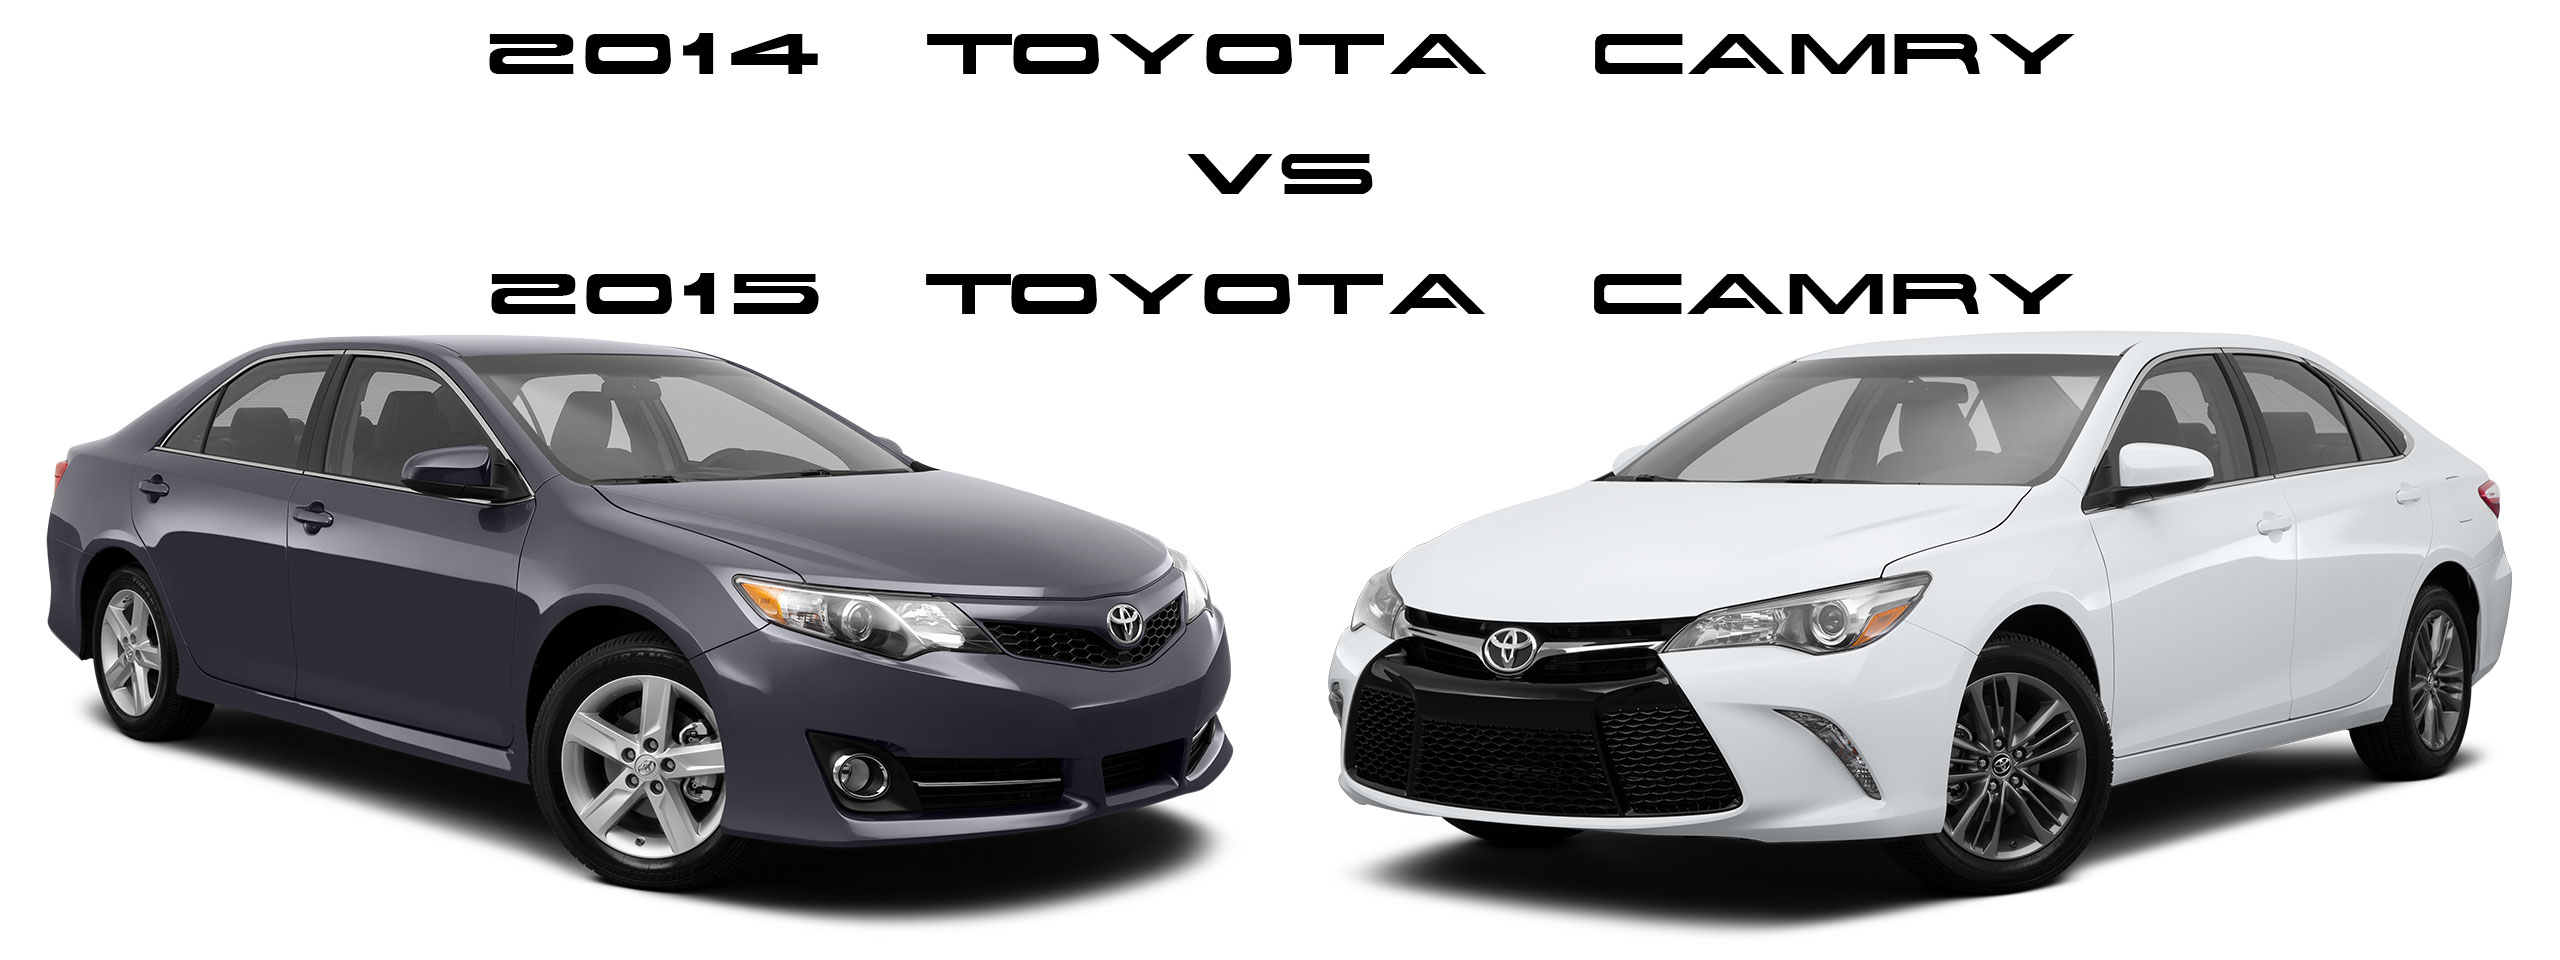 2014 toyota camry vs 2015 toyota camry differences white background limbaugh toyota reviews. Black Bedroom Furniture Sets. Home Design Ideas